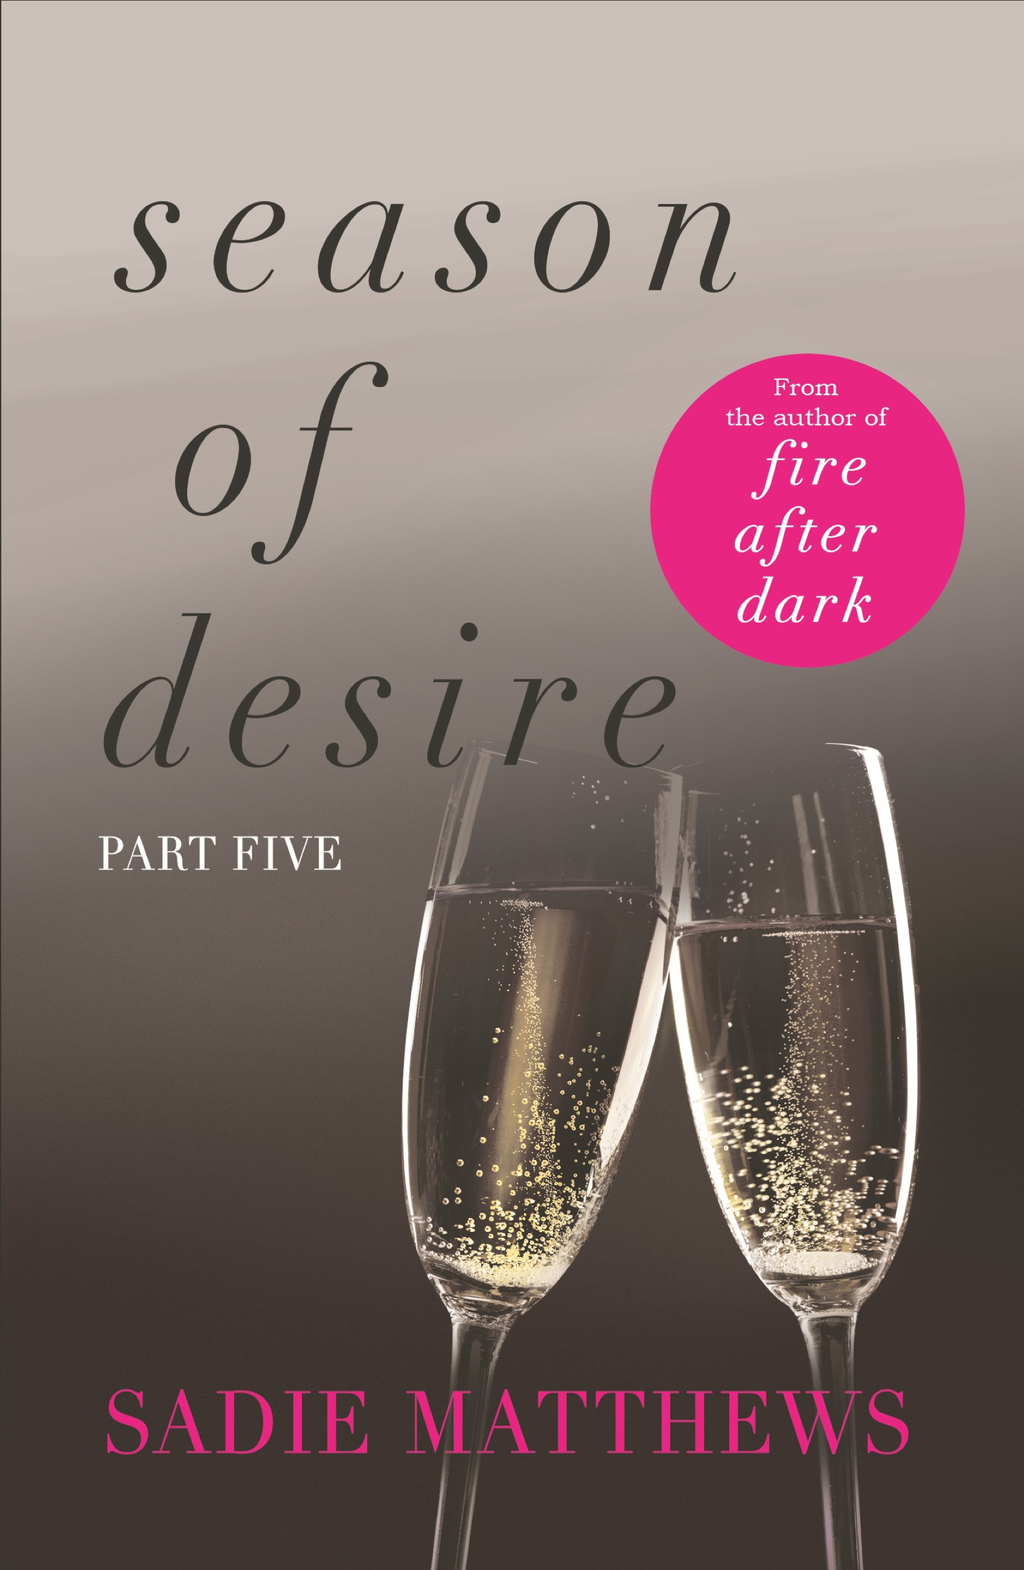 A Lesson In Love: Season of Desire Part 5